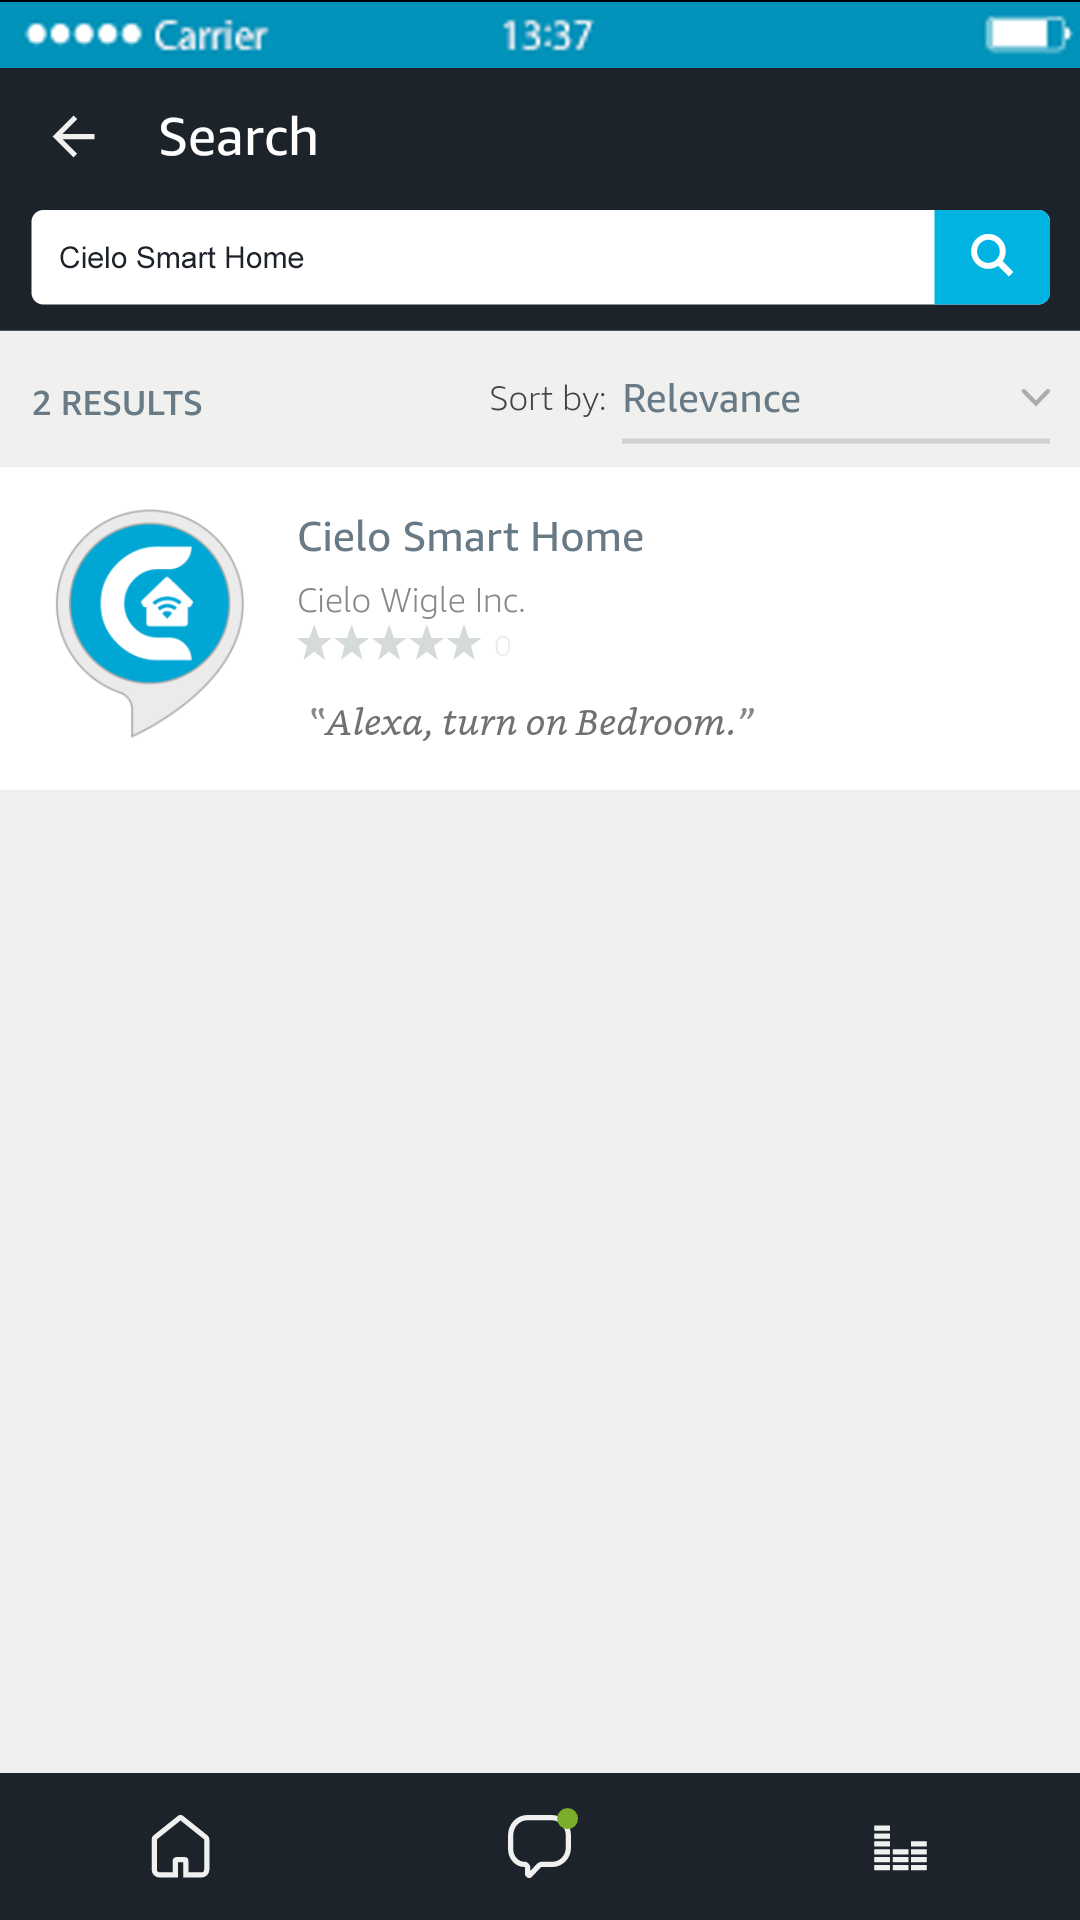 4_-__Cielo_Smart_Home_in_search.png